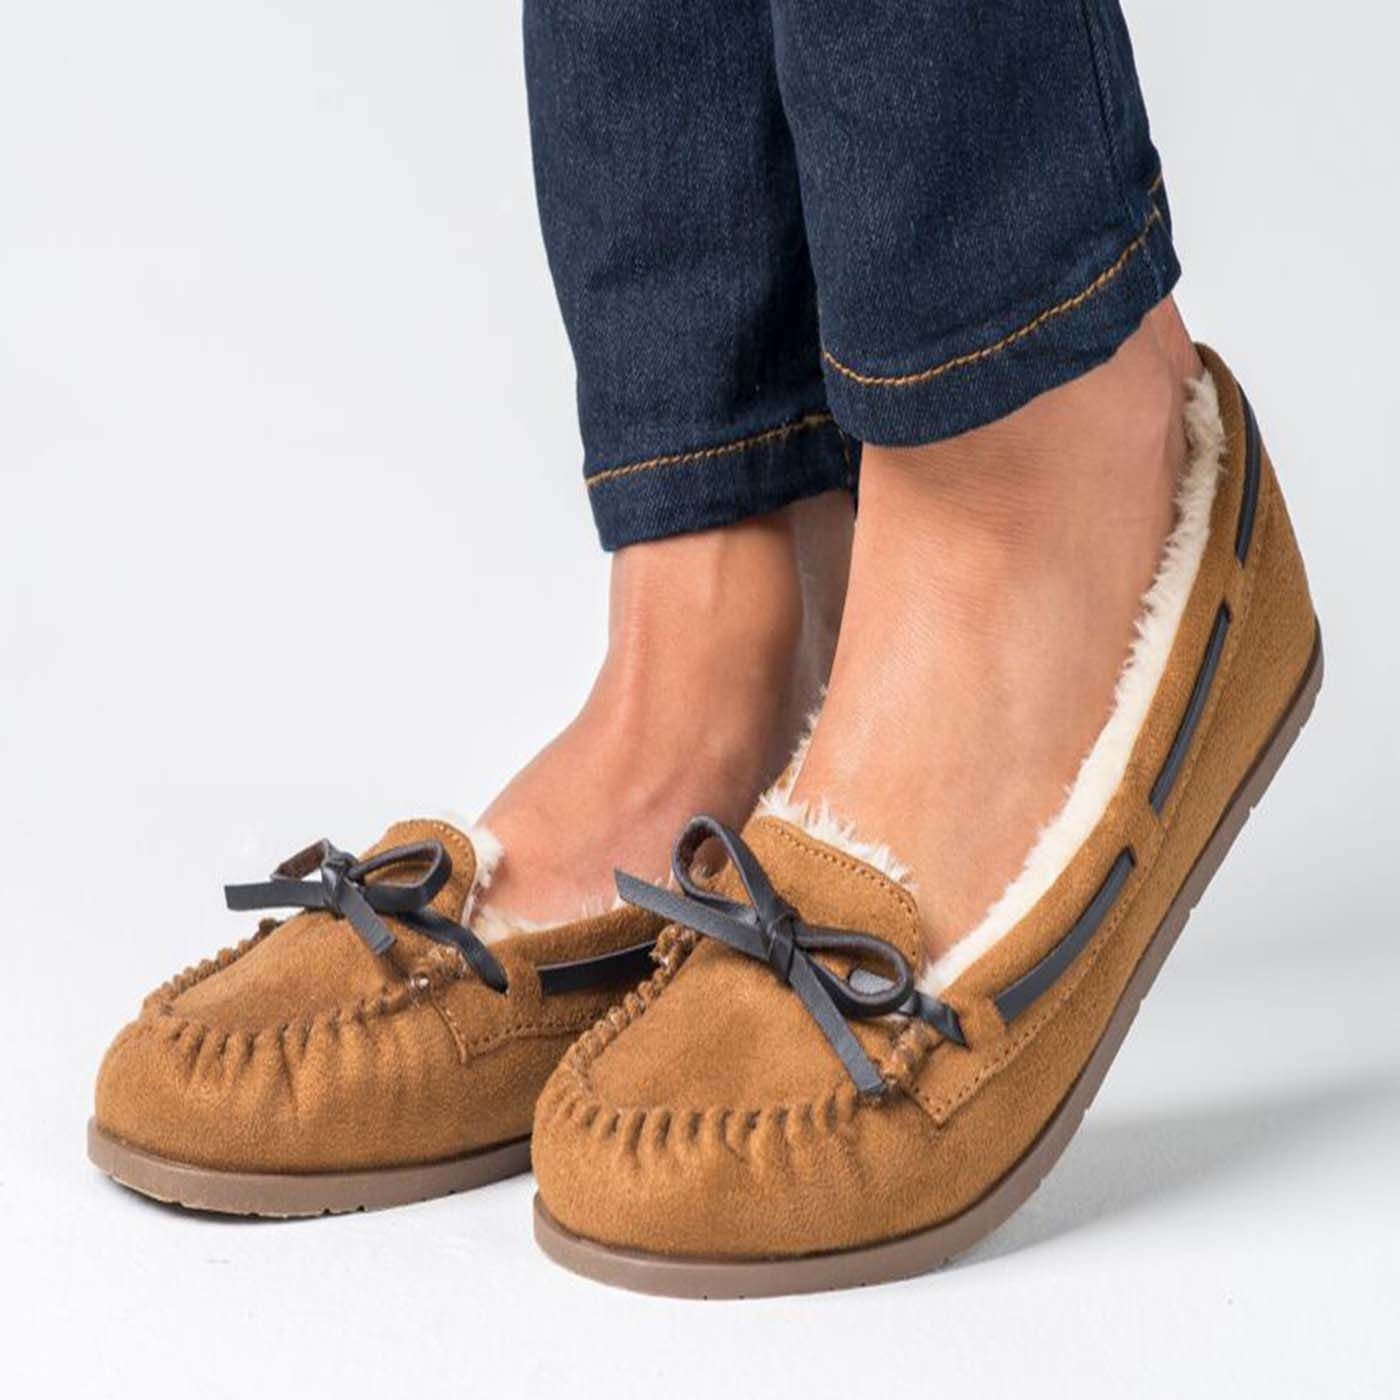 Payless shoes, Payless shoesource, Women